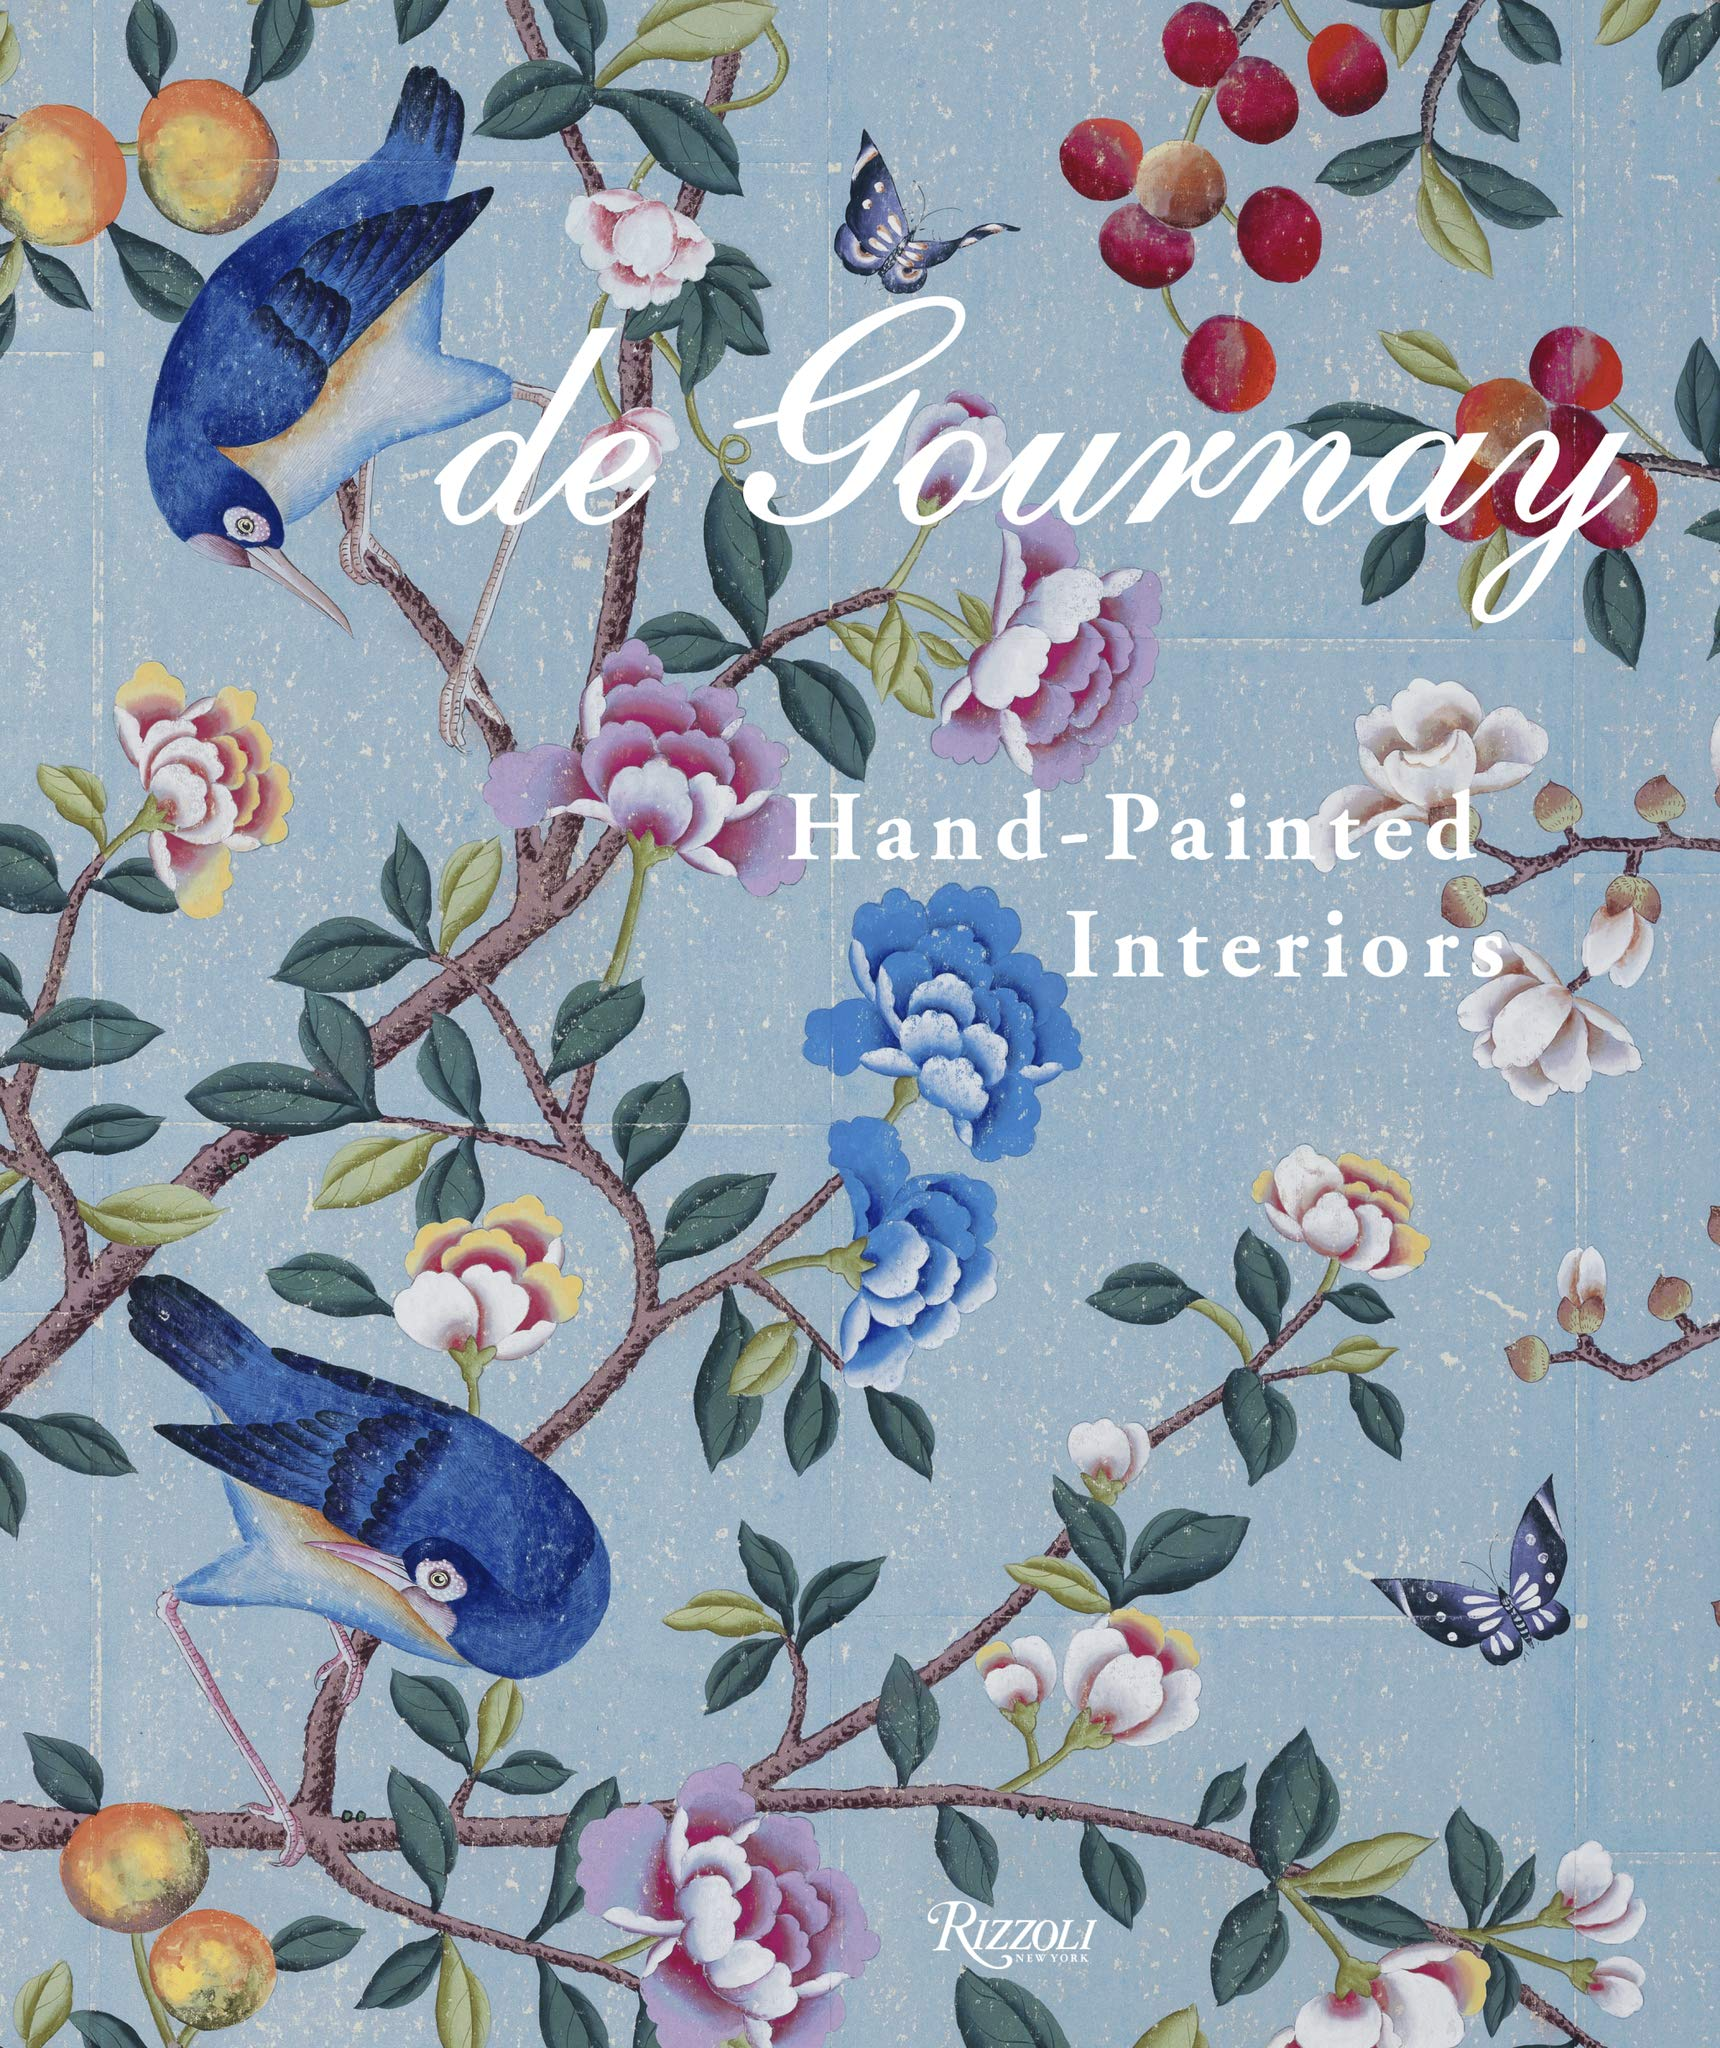 de Gournay: Hand-Painted Interiors by Claud Gurney